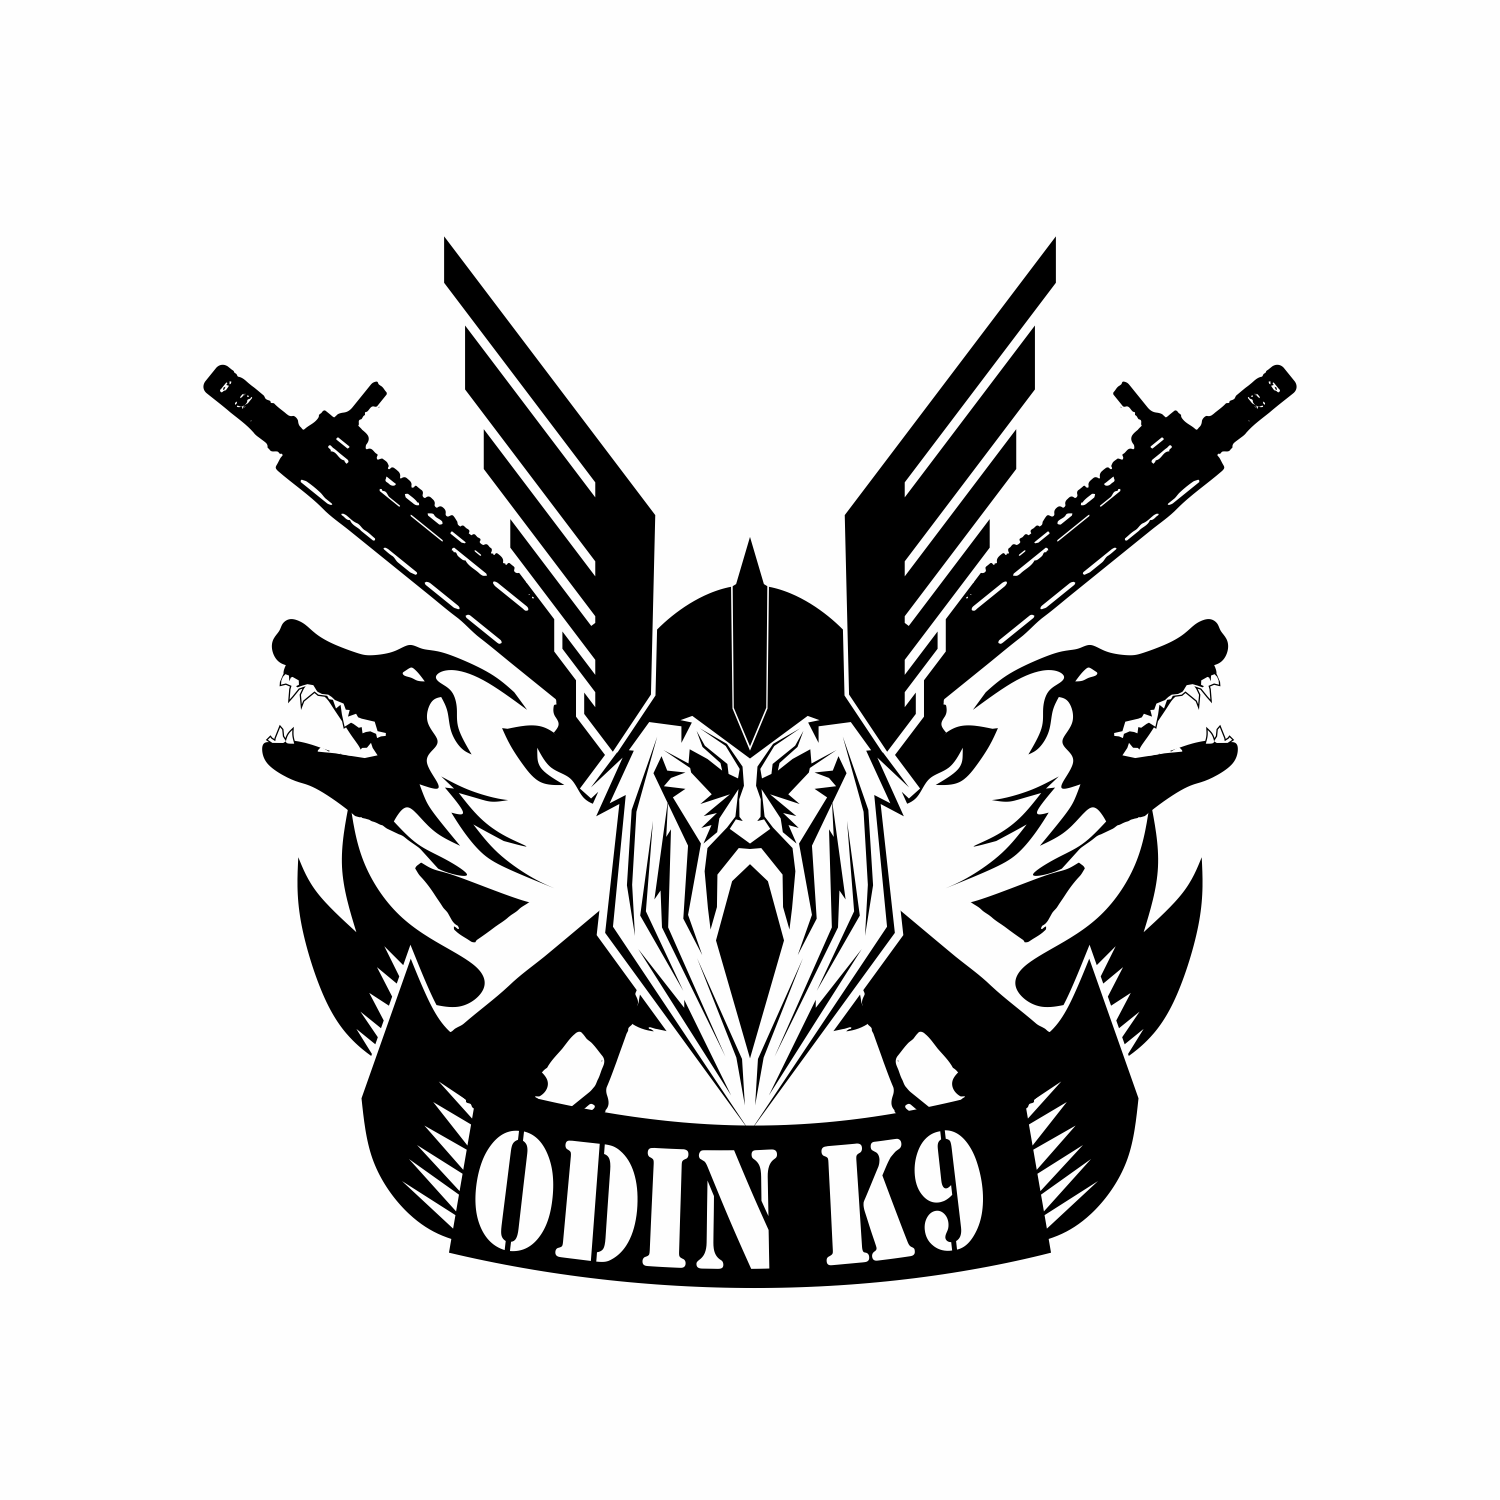 Serious Modern Dog Training Logo Design For Odin K9 By